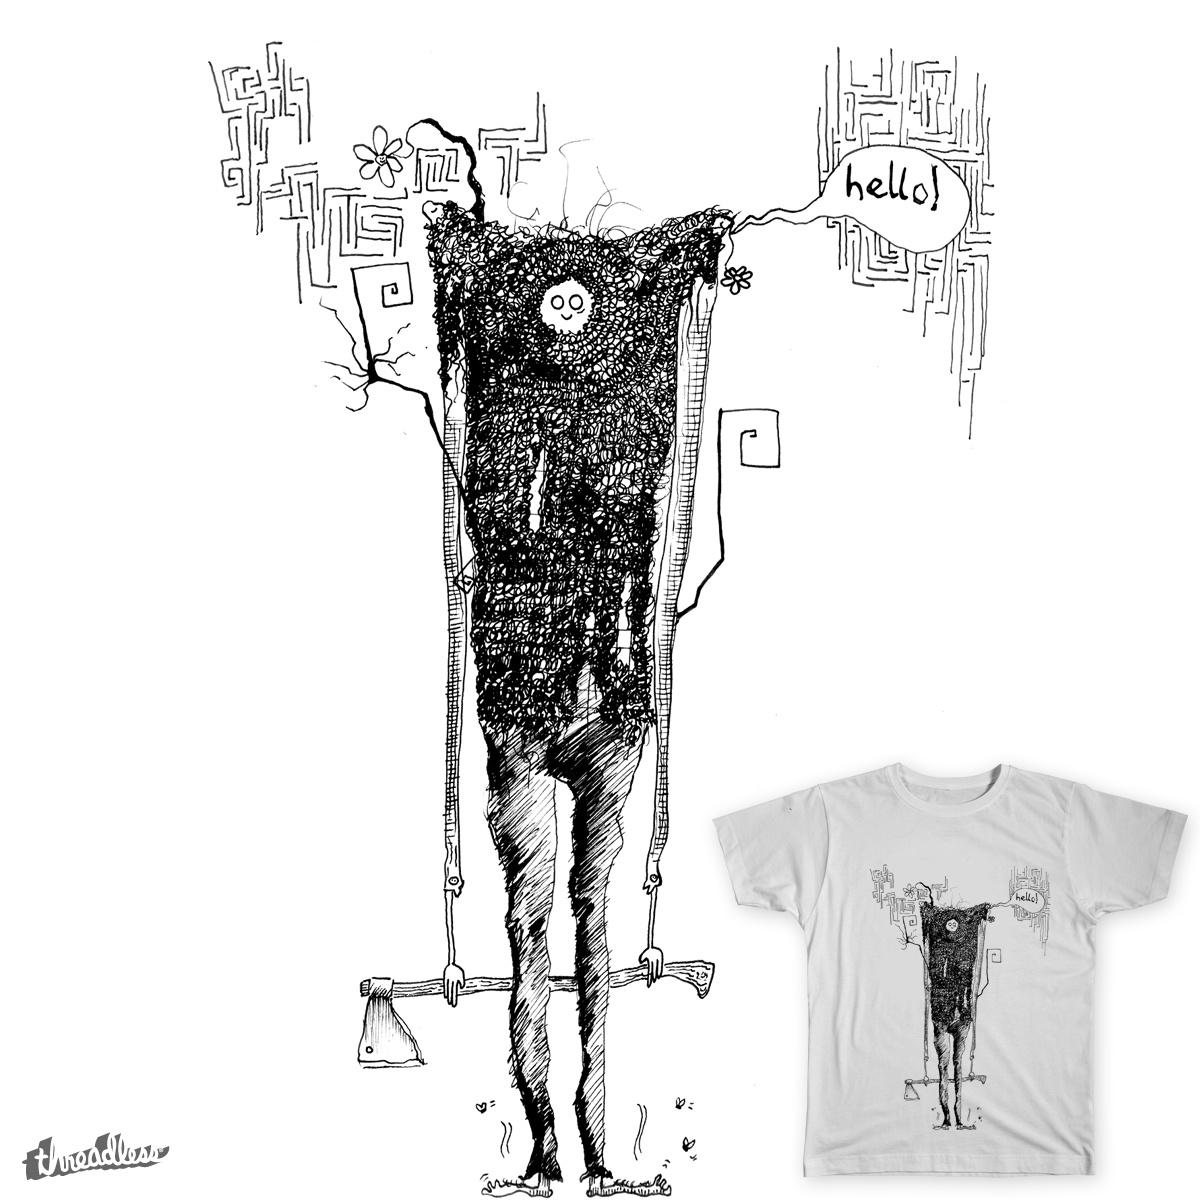 Melodramatic Maniac, a cool t-shirt design